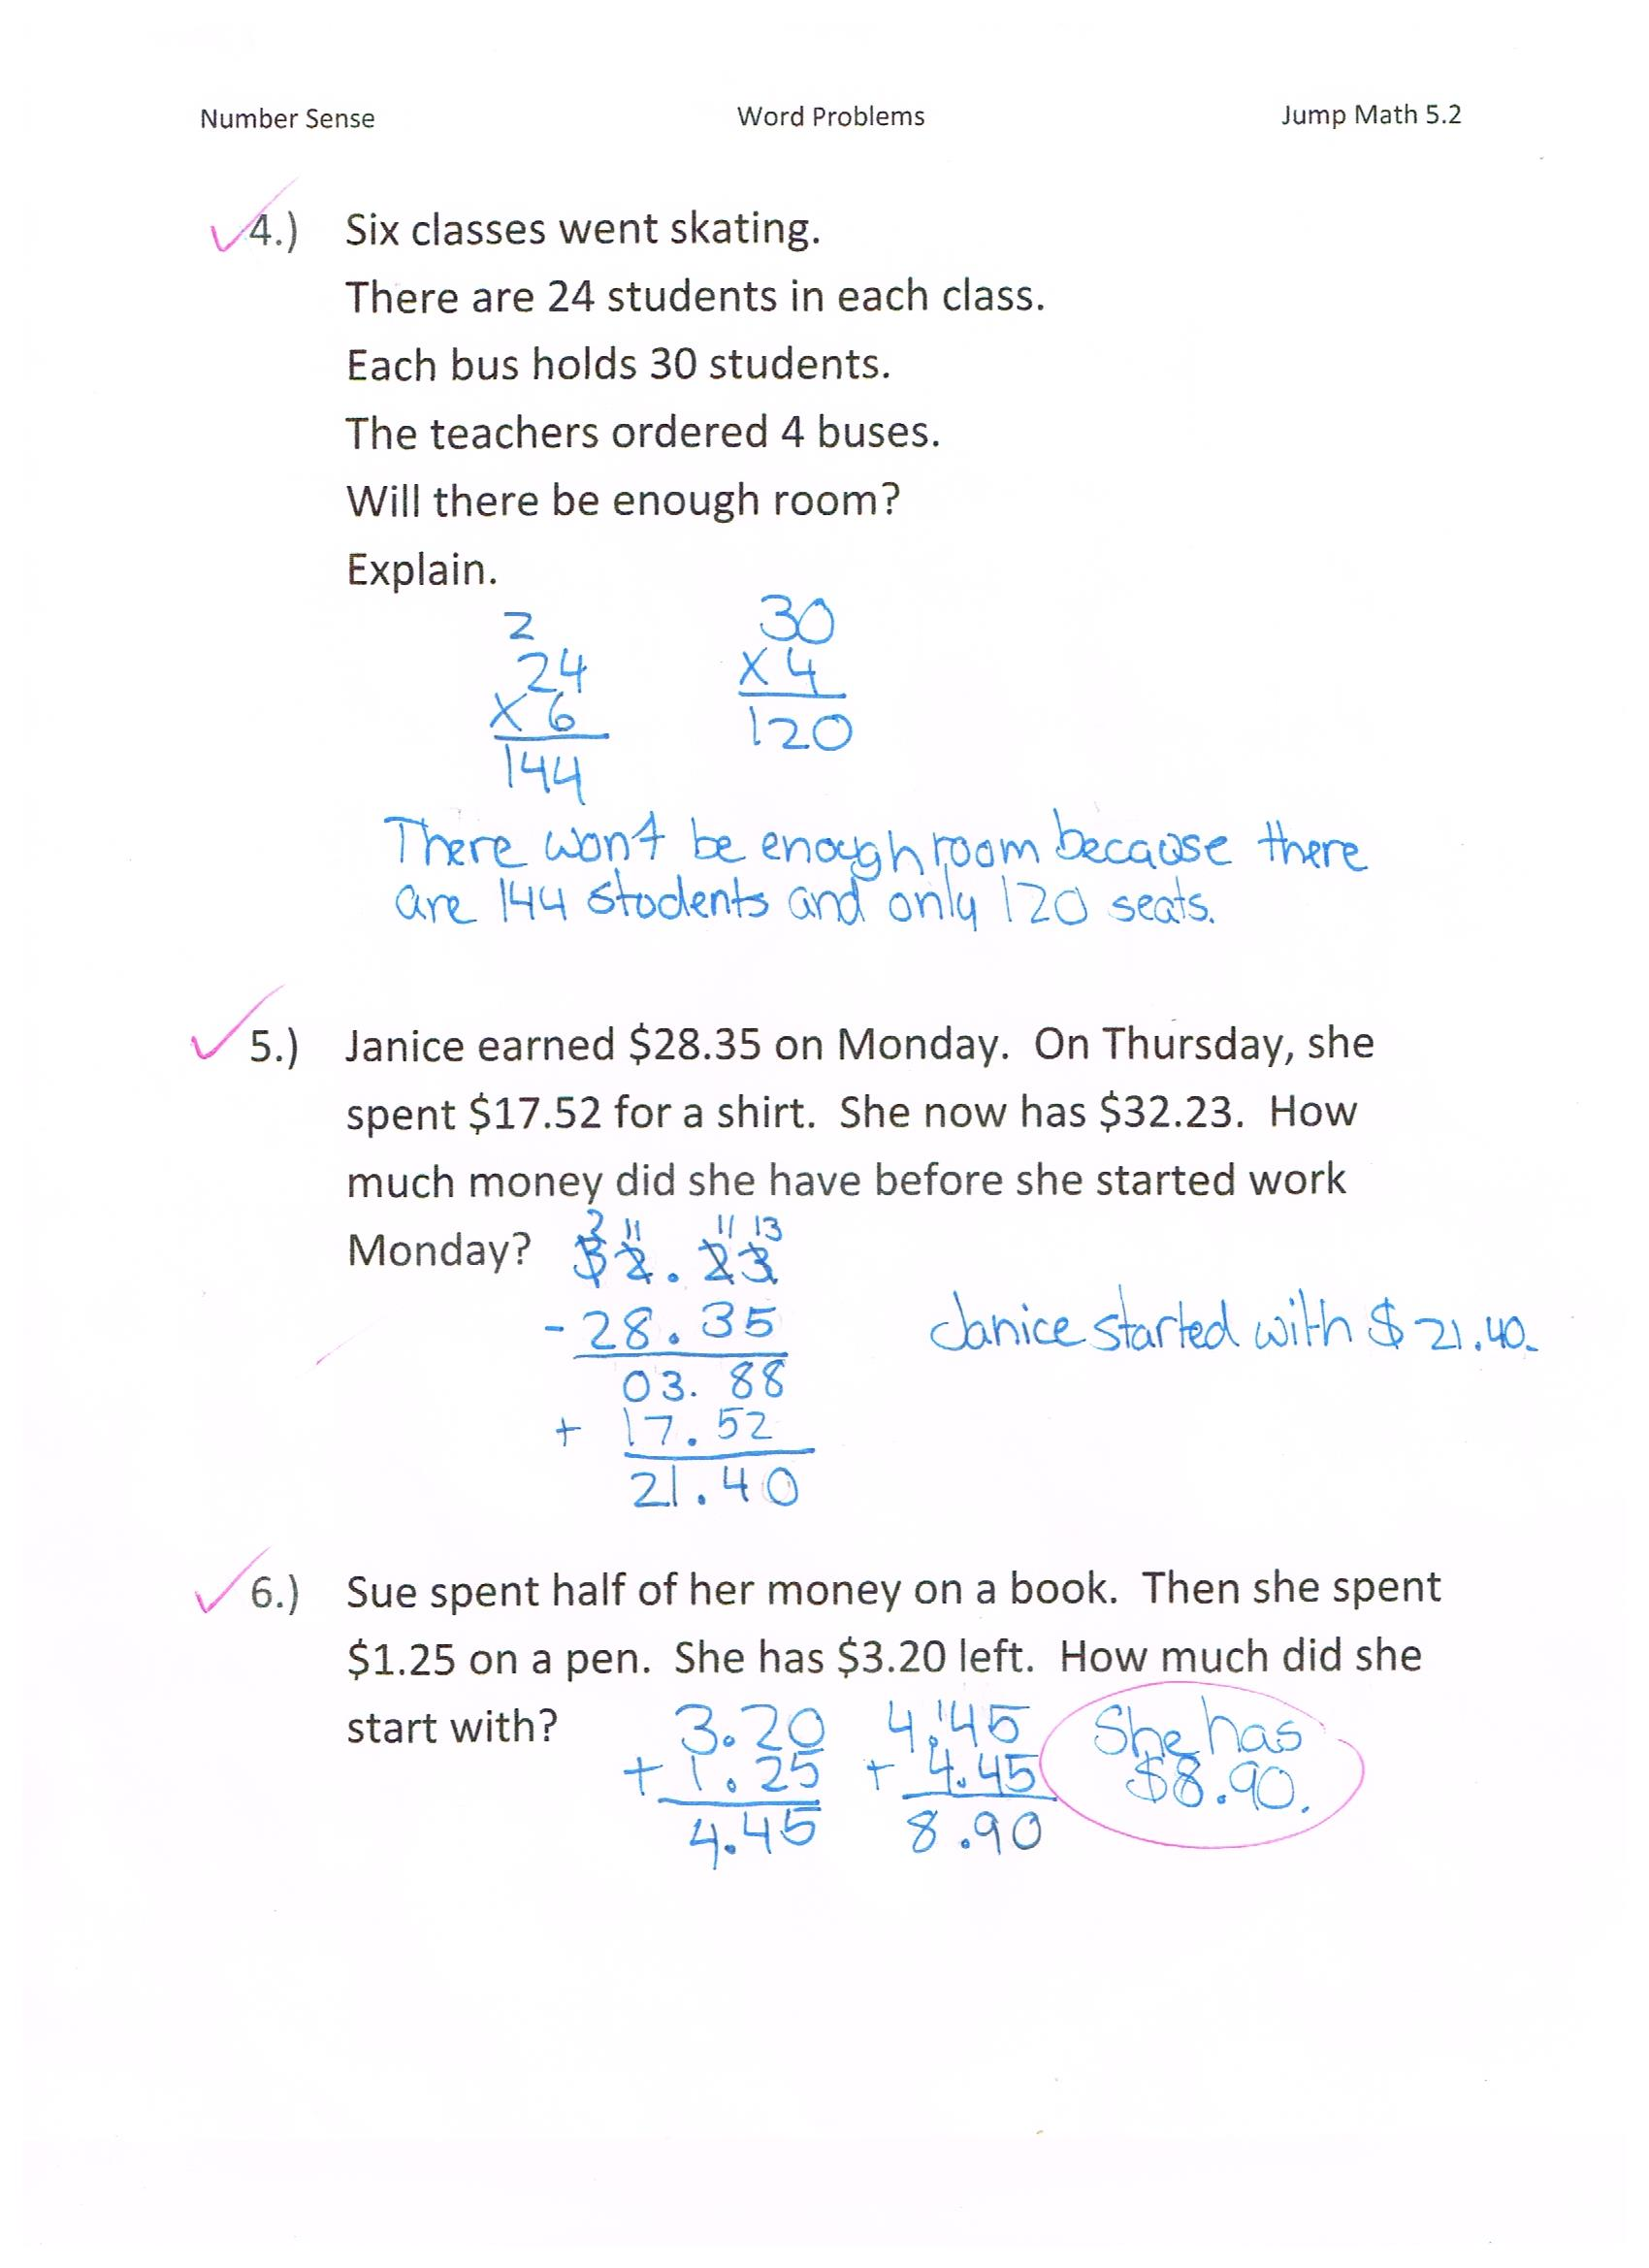 Jump Math 5 2 Number Sense Word Problems Page 252